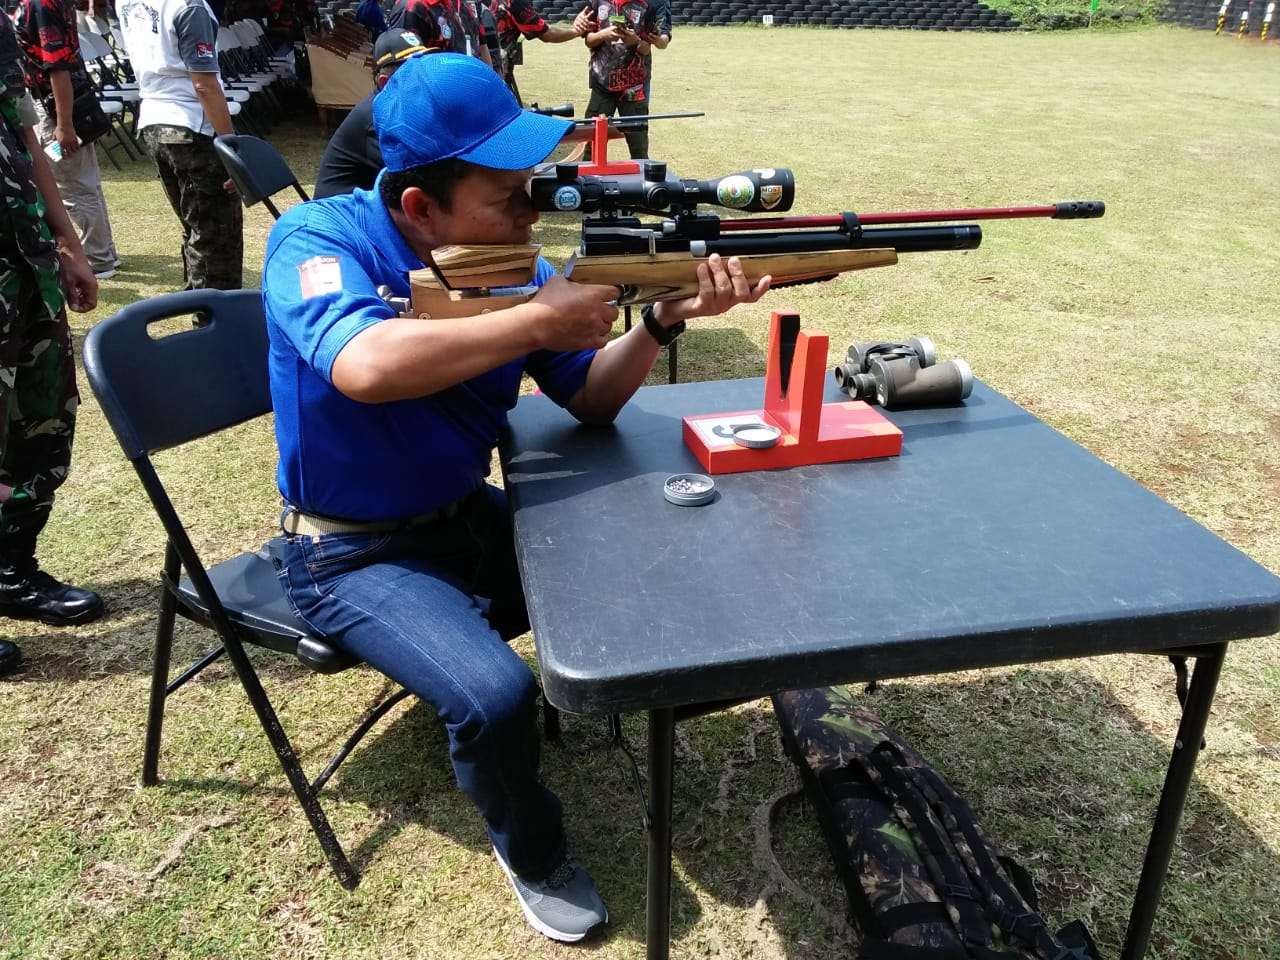 Danrem Buka Kejuaraan  Menembak BSCB Piala Danrem 064/My Open Shooting Tournament